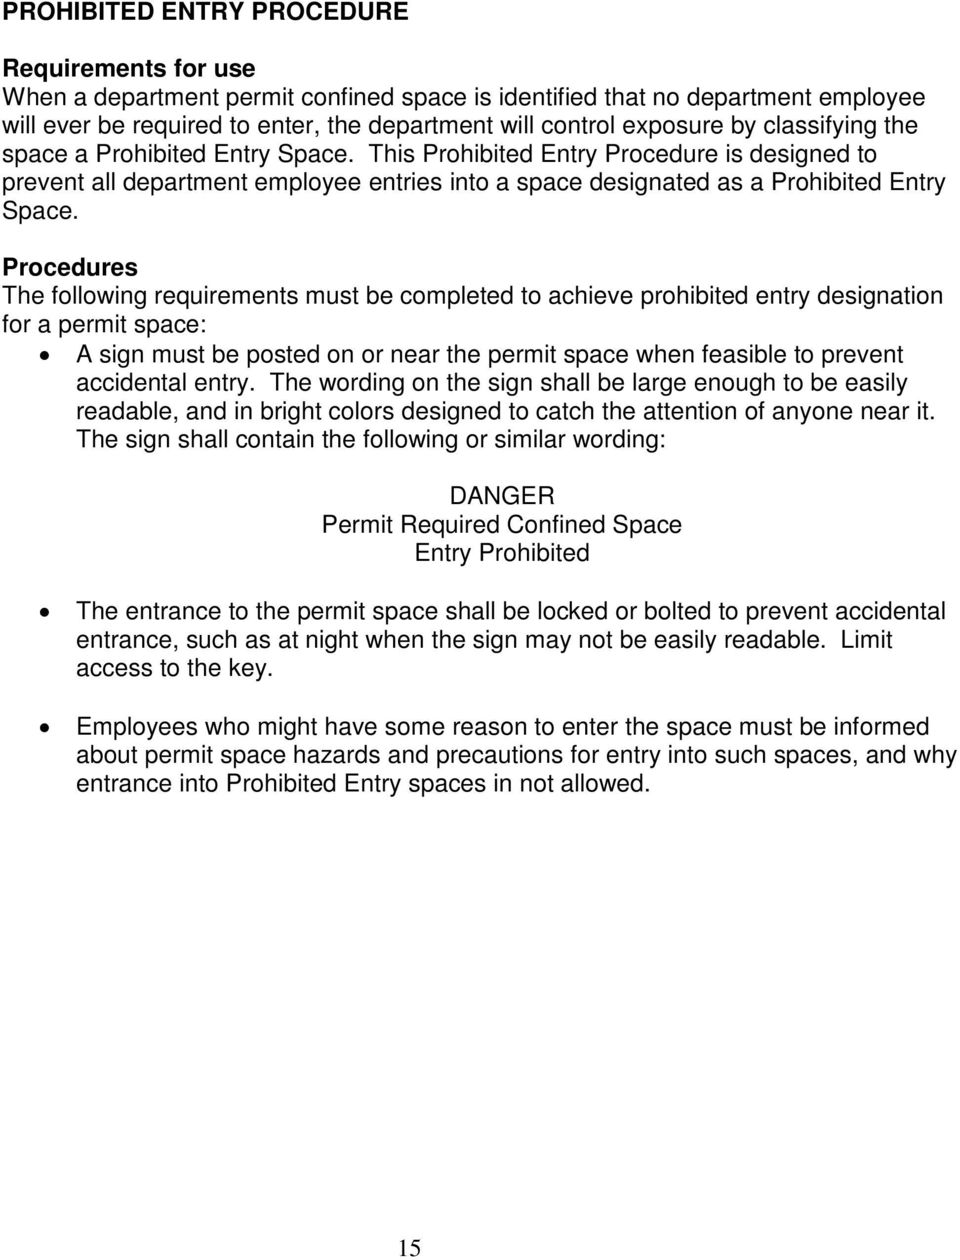 Procedures The following requirements must be completed to achieve prohibited entry designation for a permit space: A sign must be posted on or near the permit space when feasible to prevent